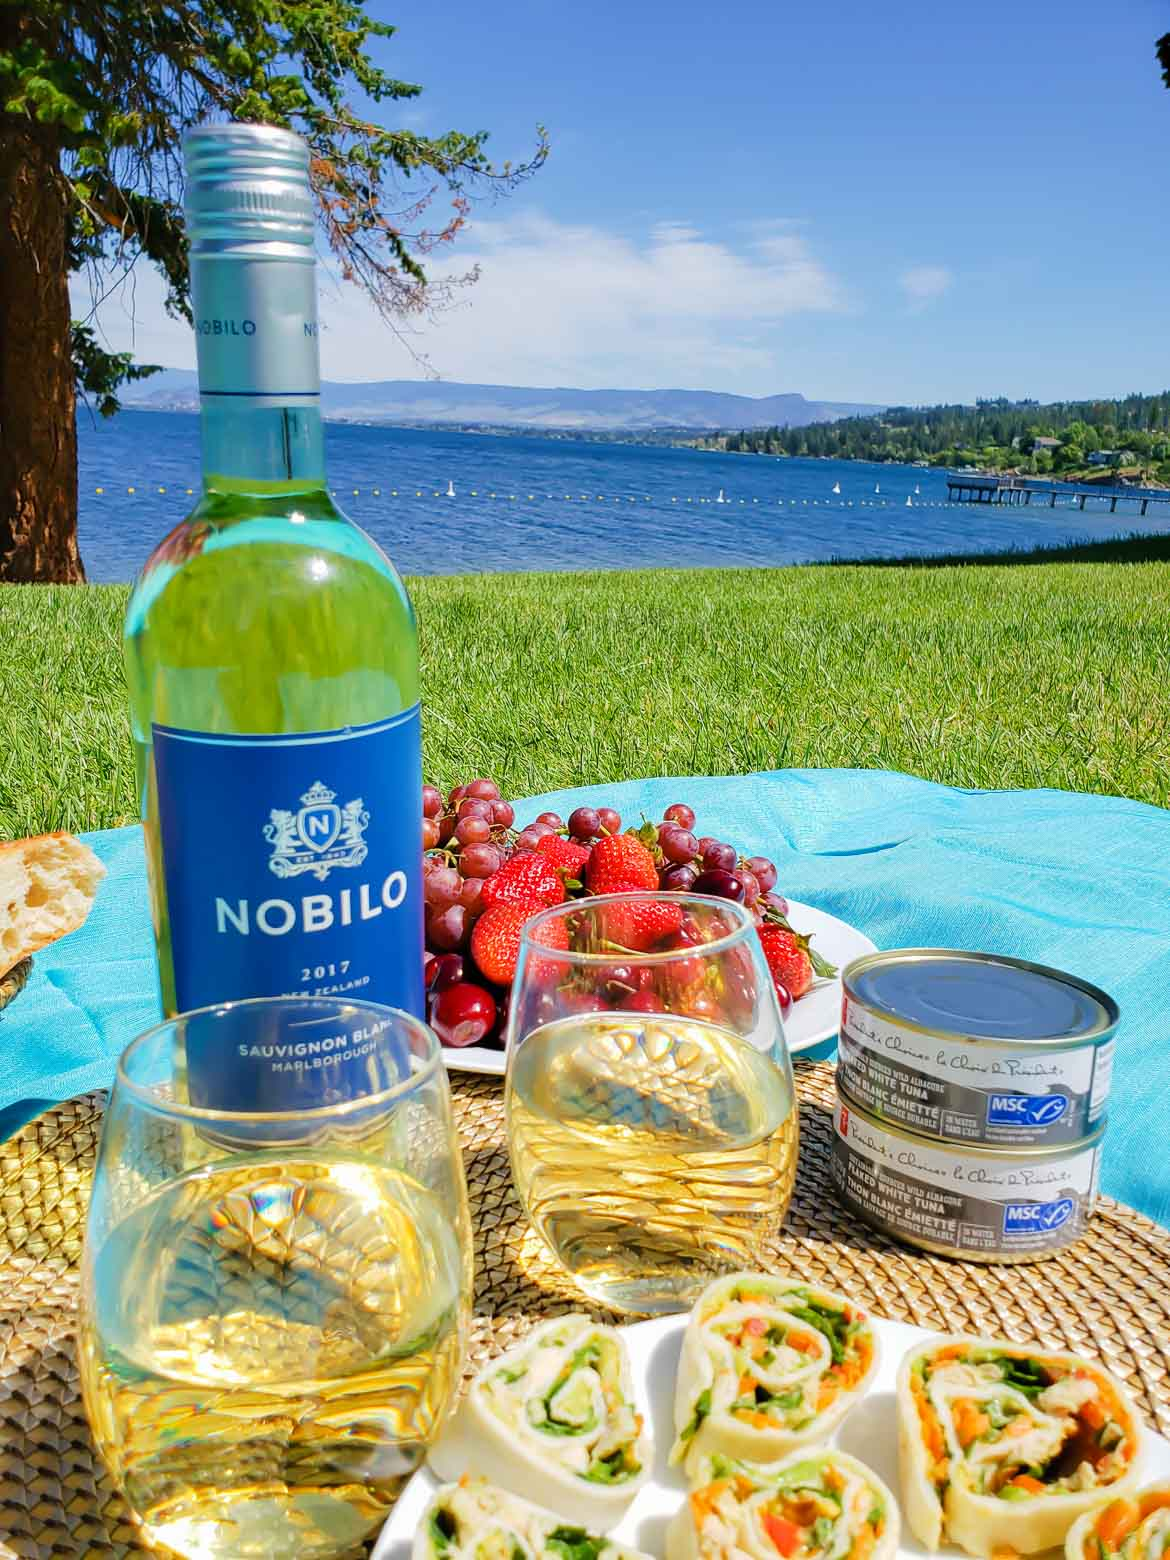 picnic overlooking a lake with Nobilo Sauvignon Blanc wine and pinwheels with MSC certified tuna and fresh veggies